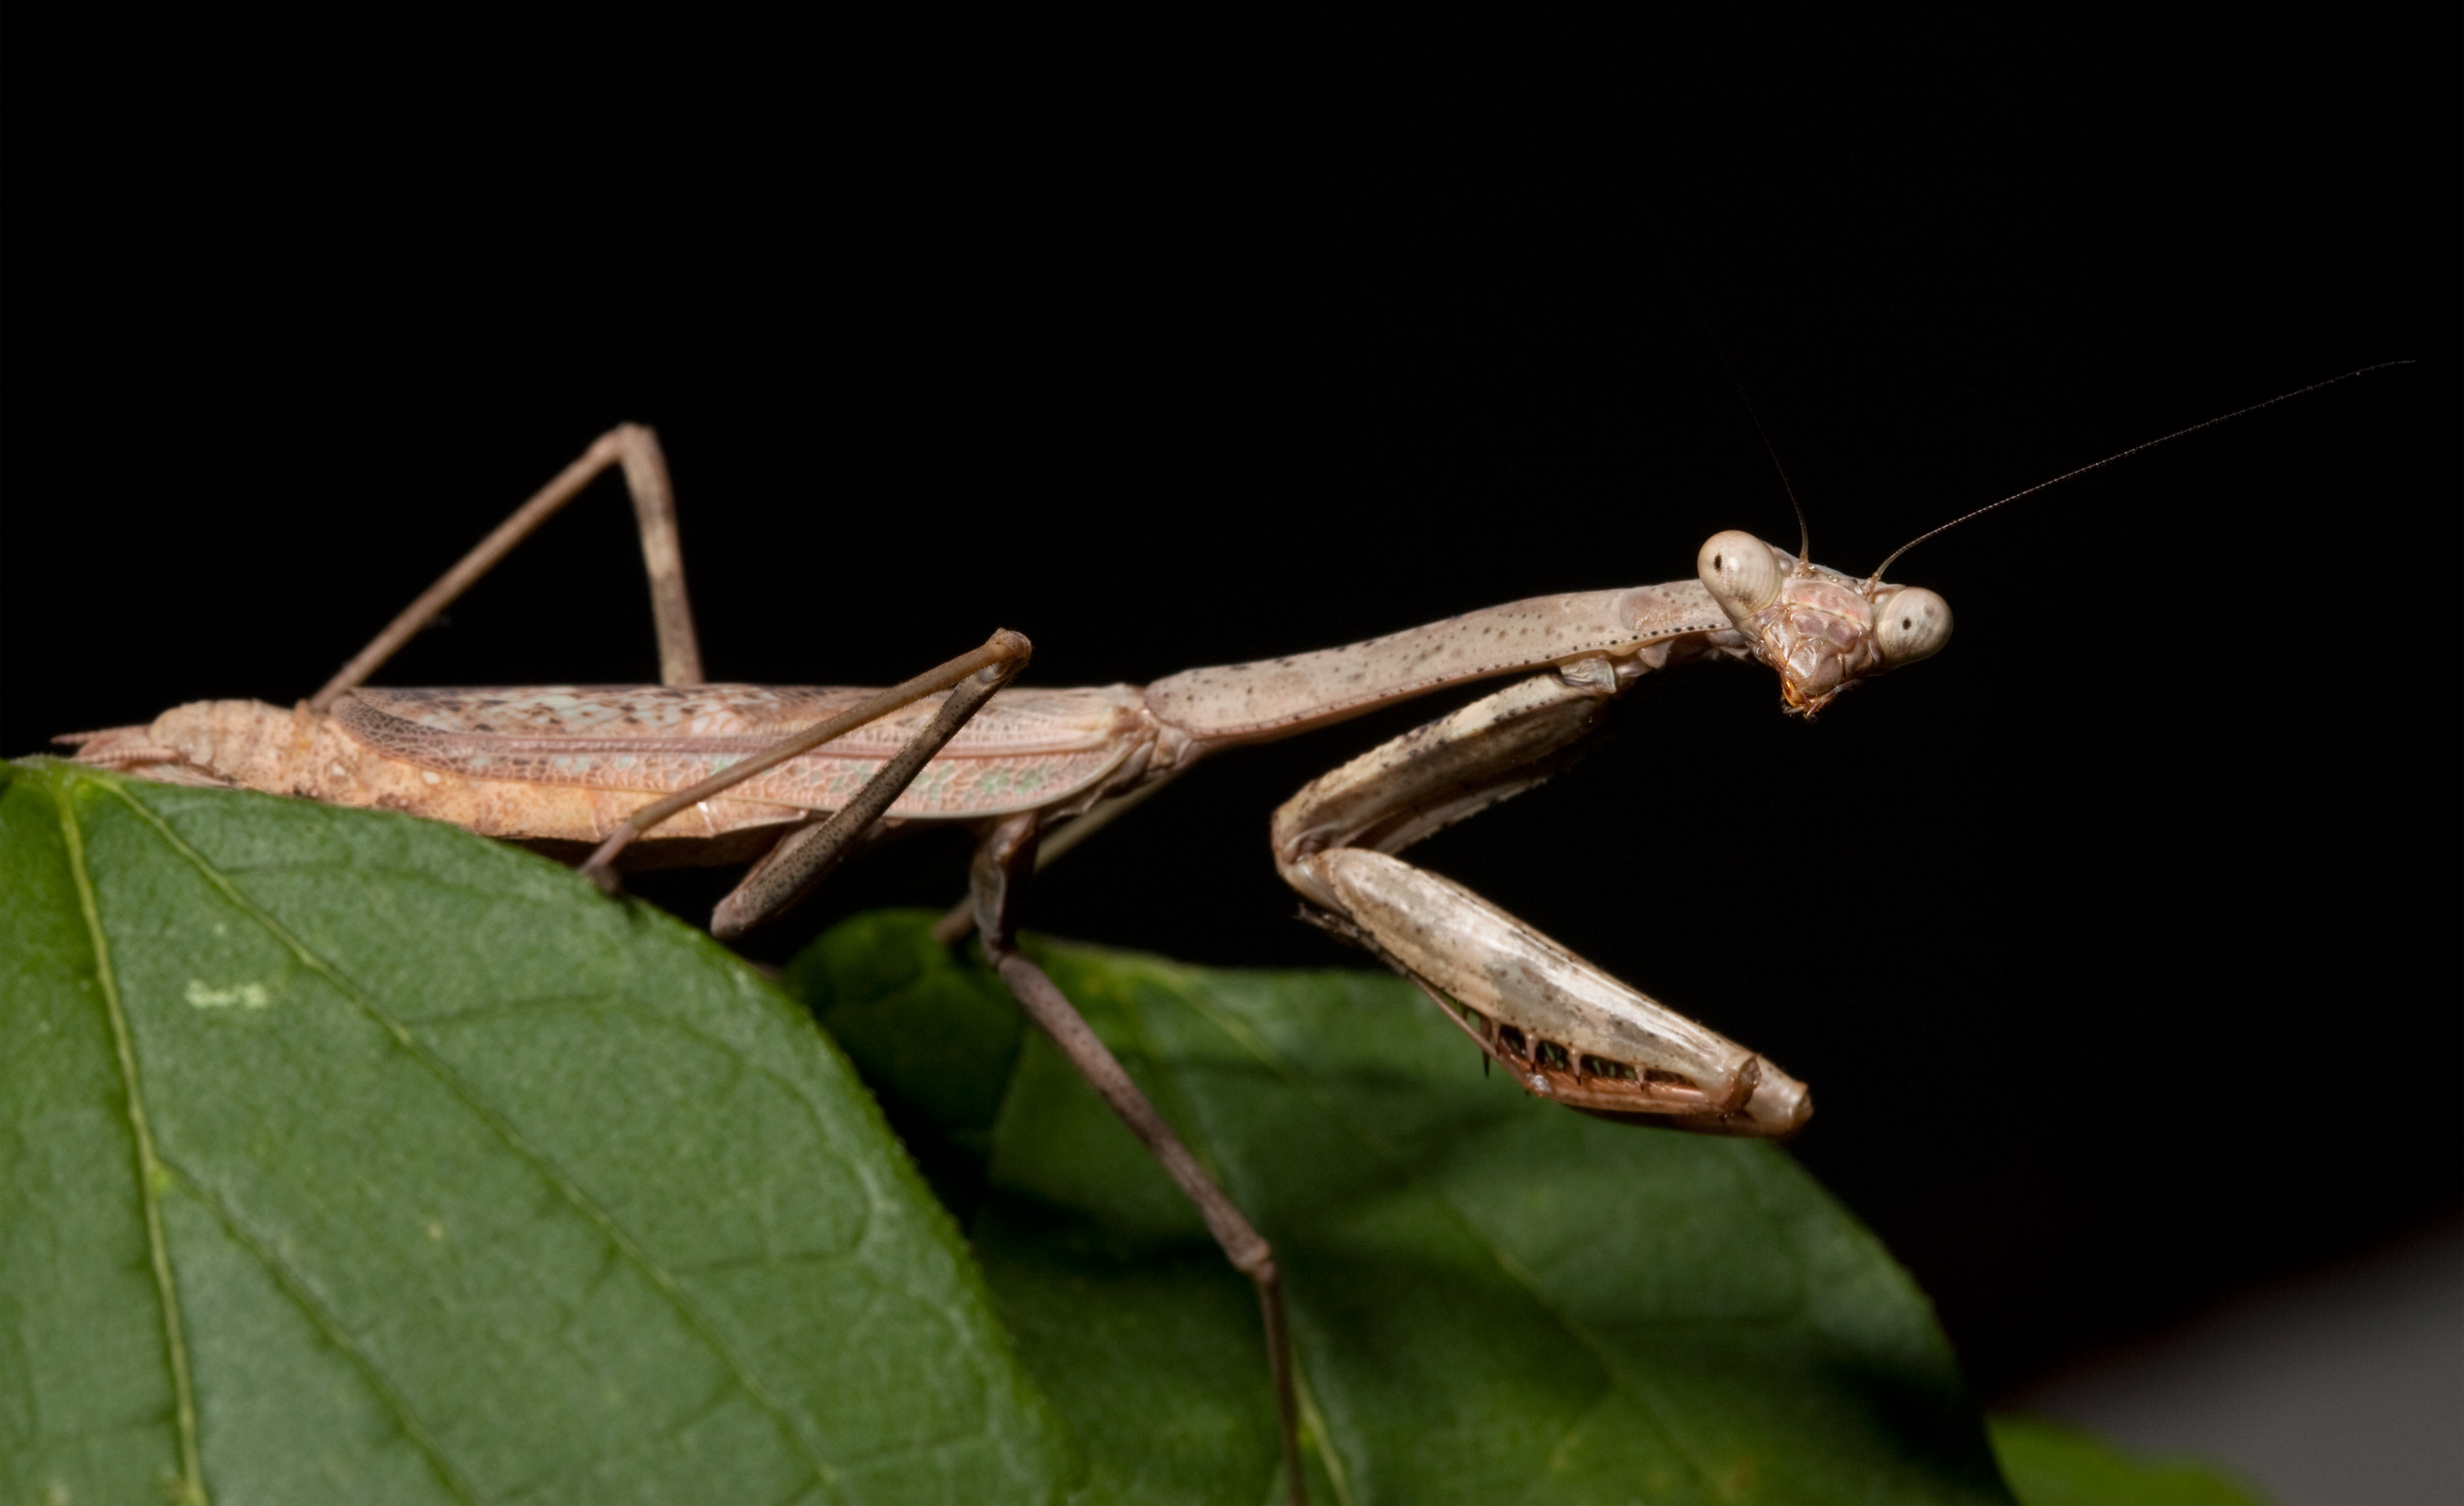 1000 Images About Phasmida Mantodea On Pinterest Praying Mantis Insects And Sticks